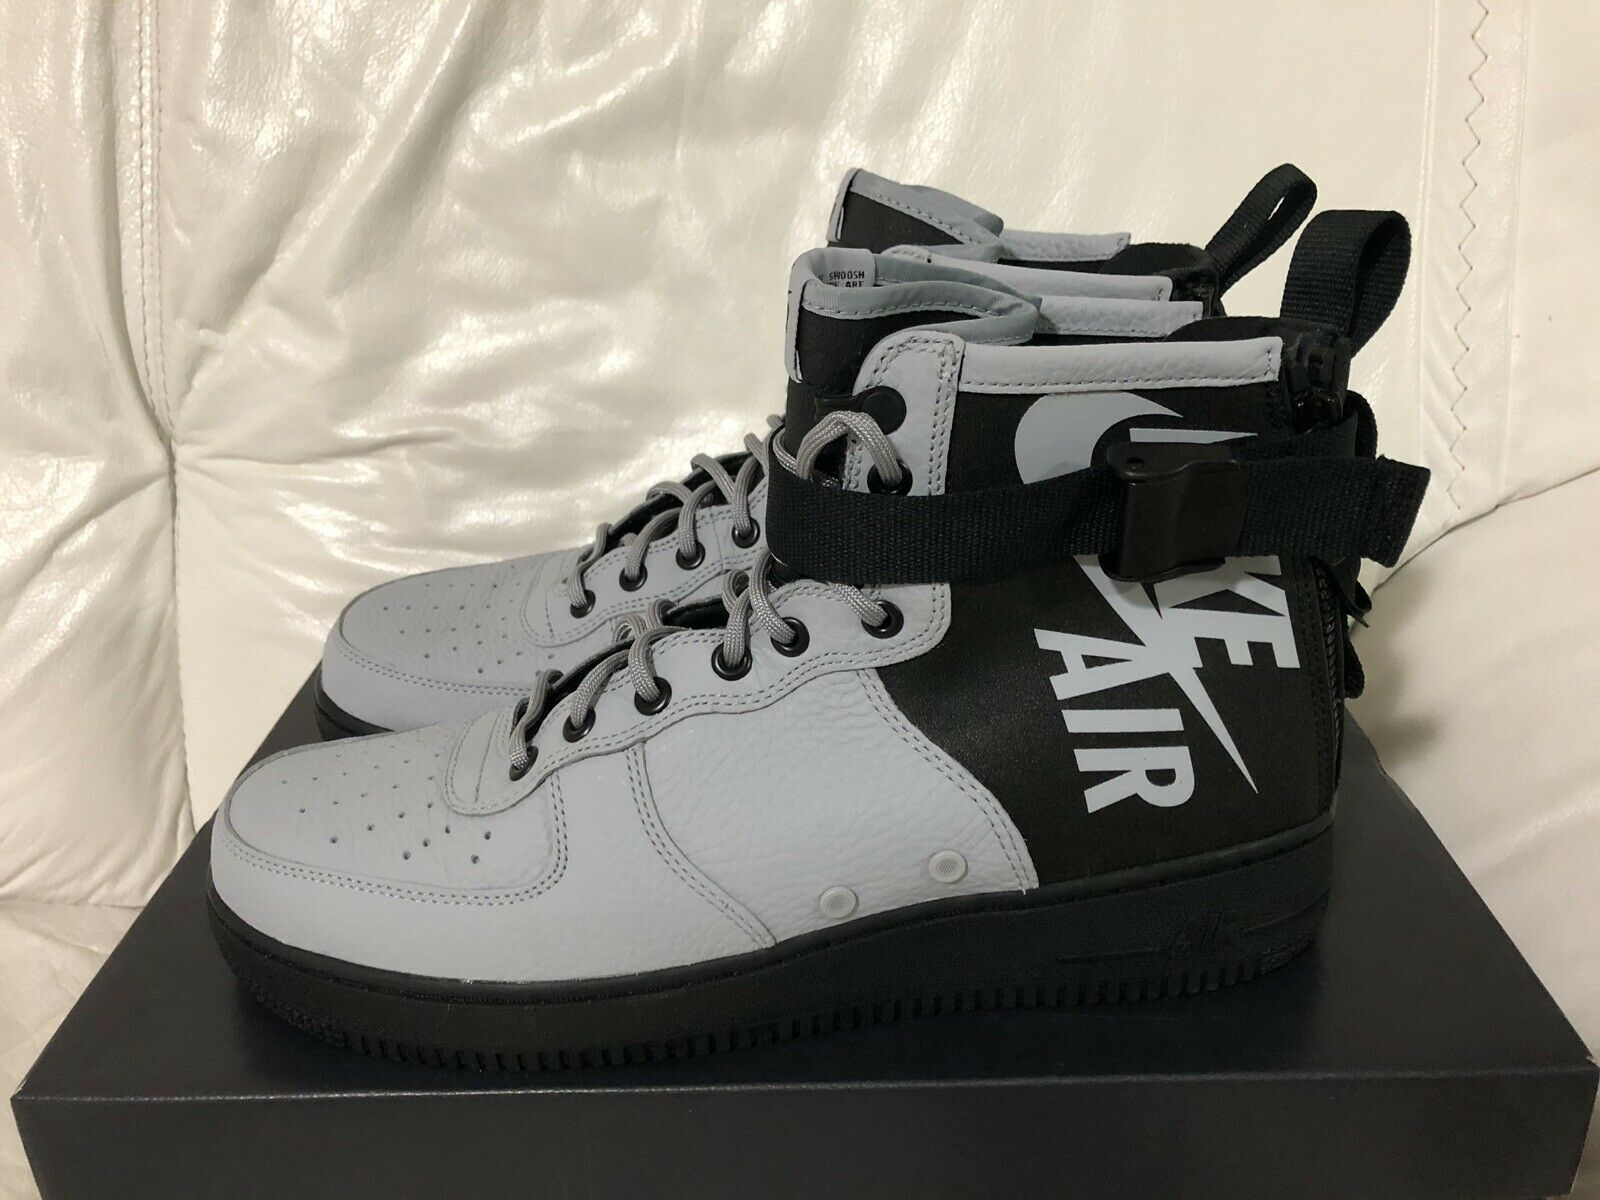 Nike SF AF1 Mid Special Forces Air Force One Wolf Grey Black New